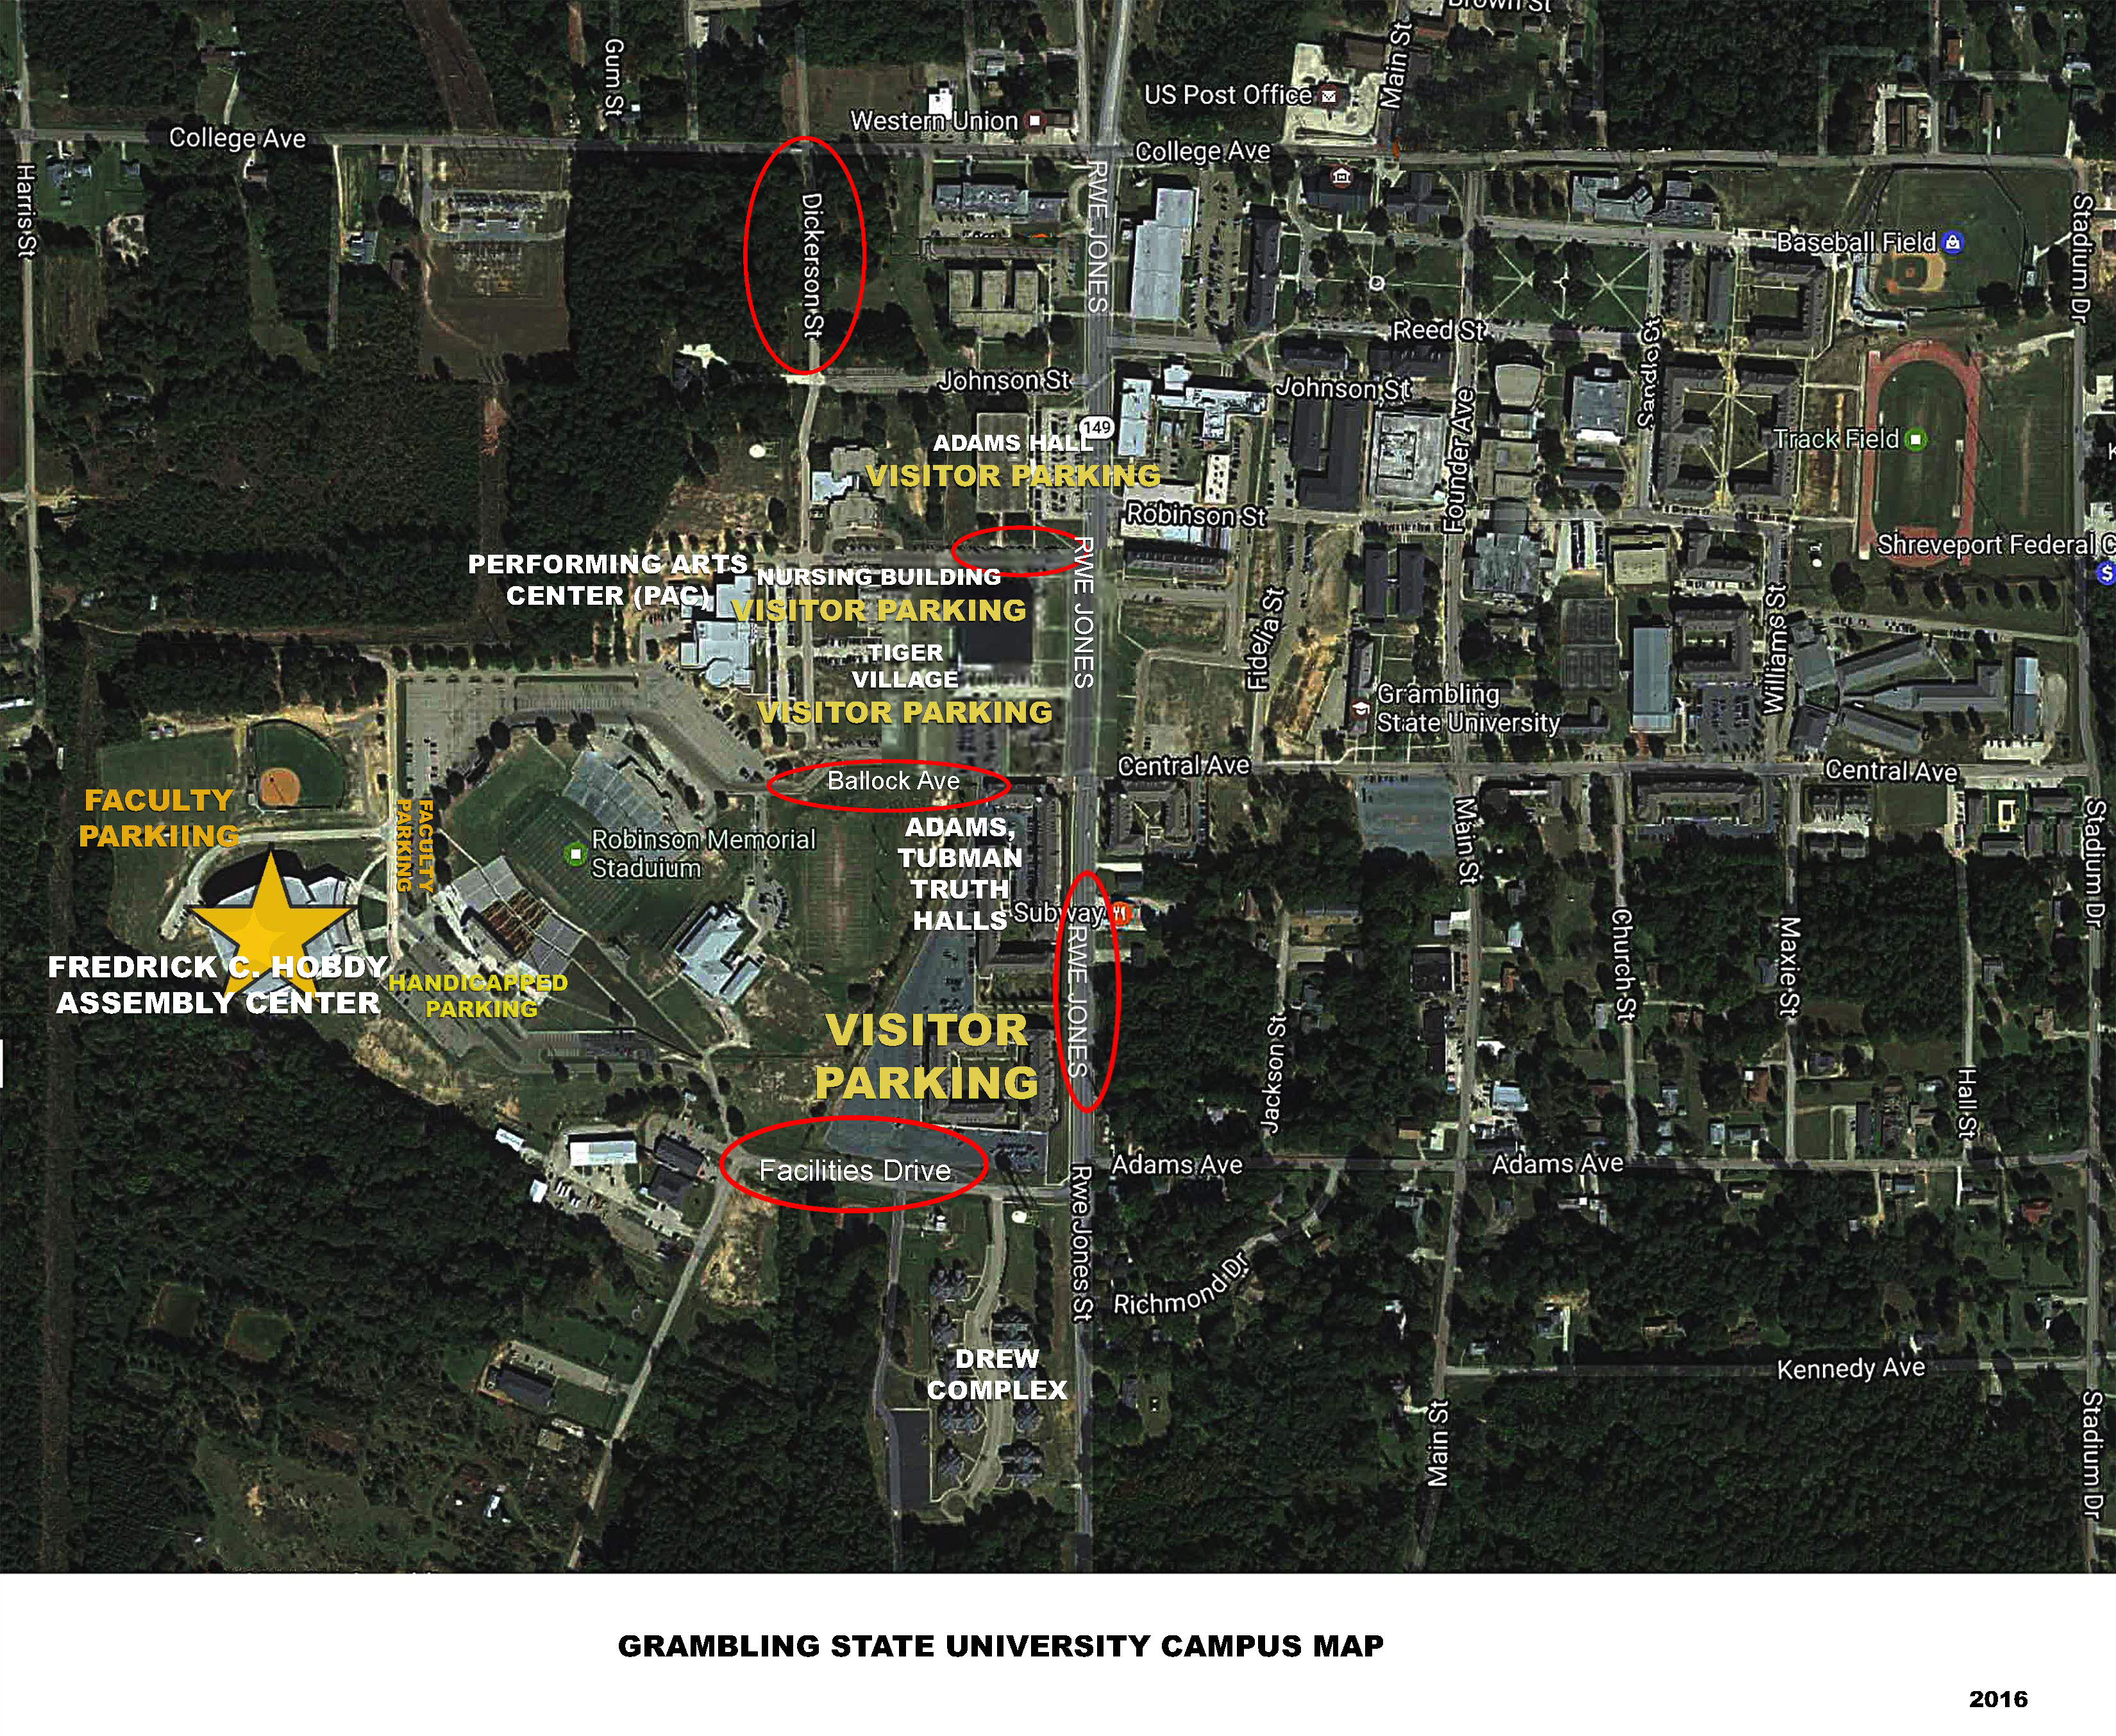 grambling state university campus map Grambling State University Parking Guidelines For Commencement grambling state university campus map